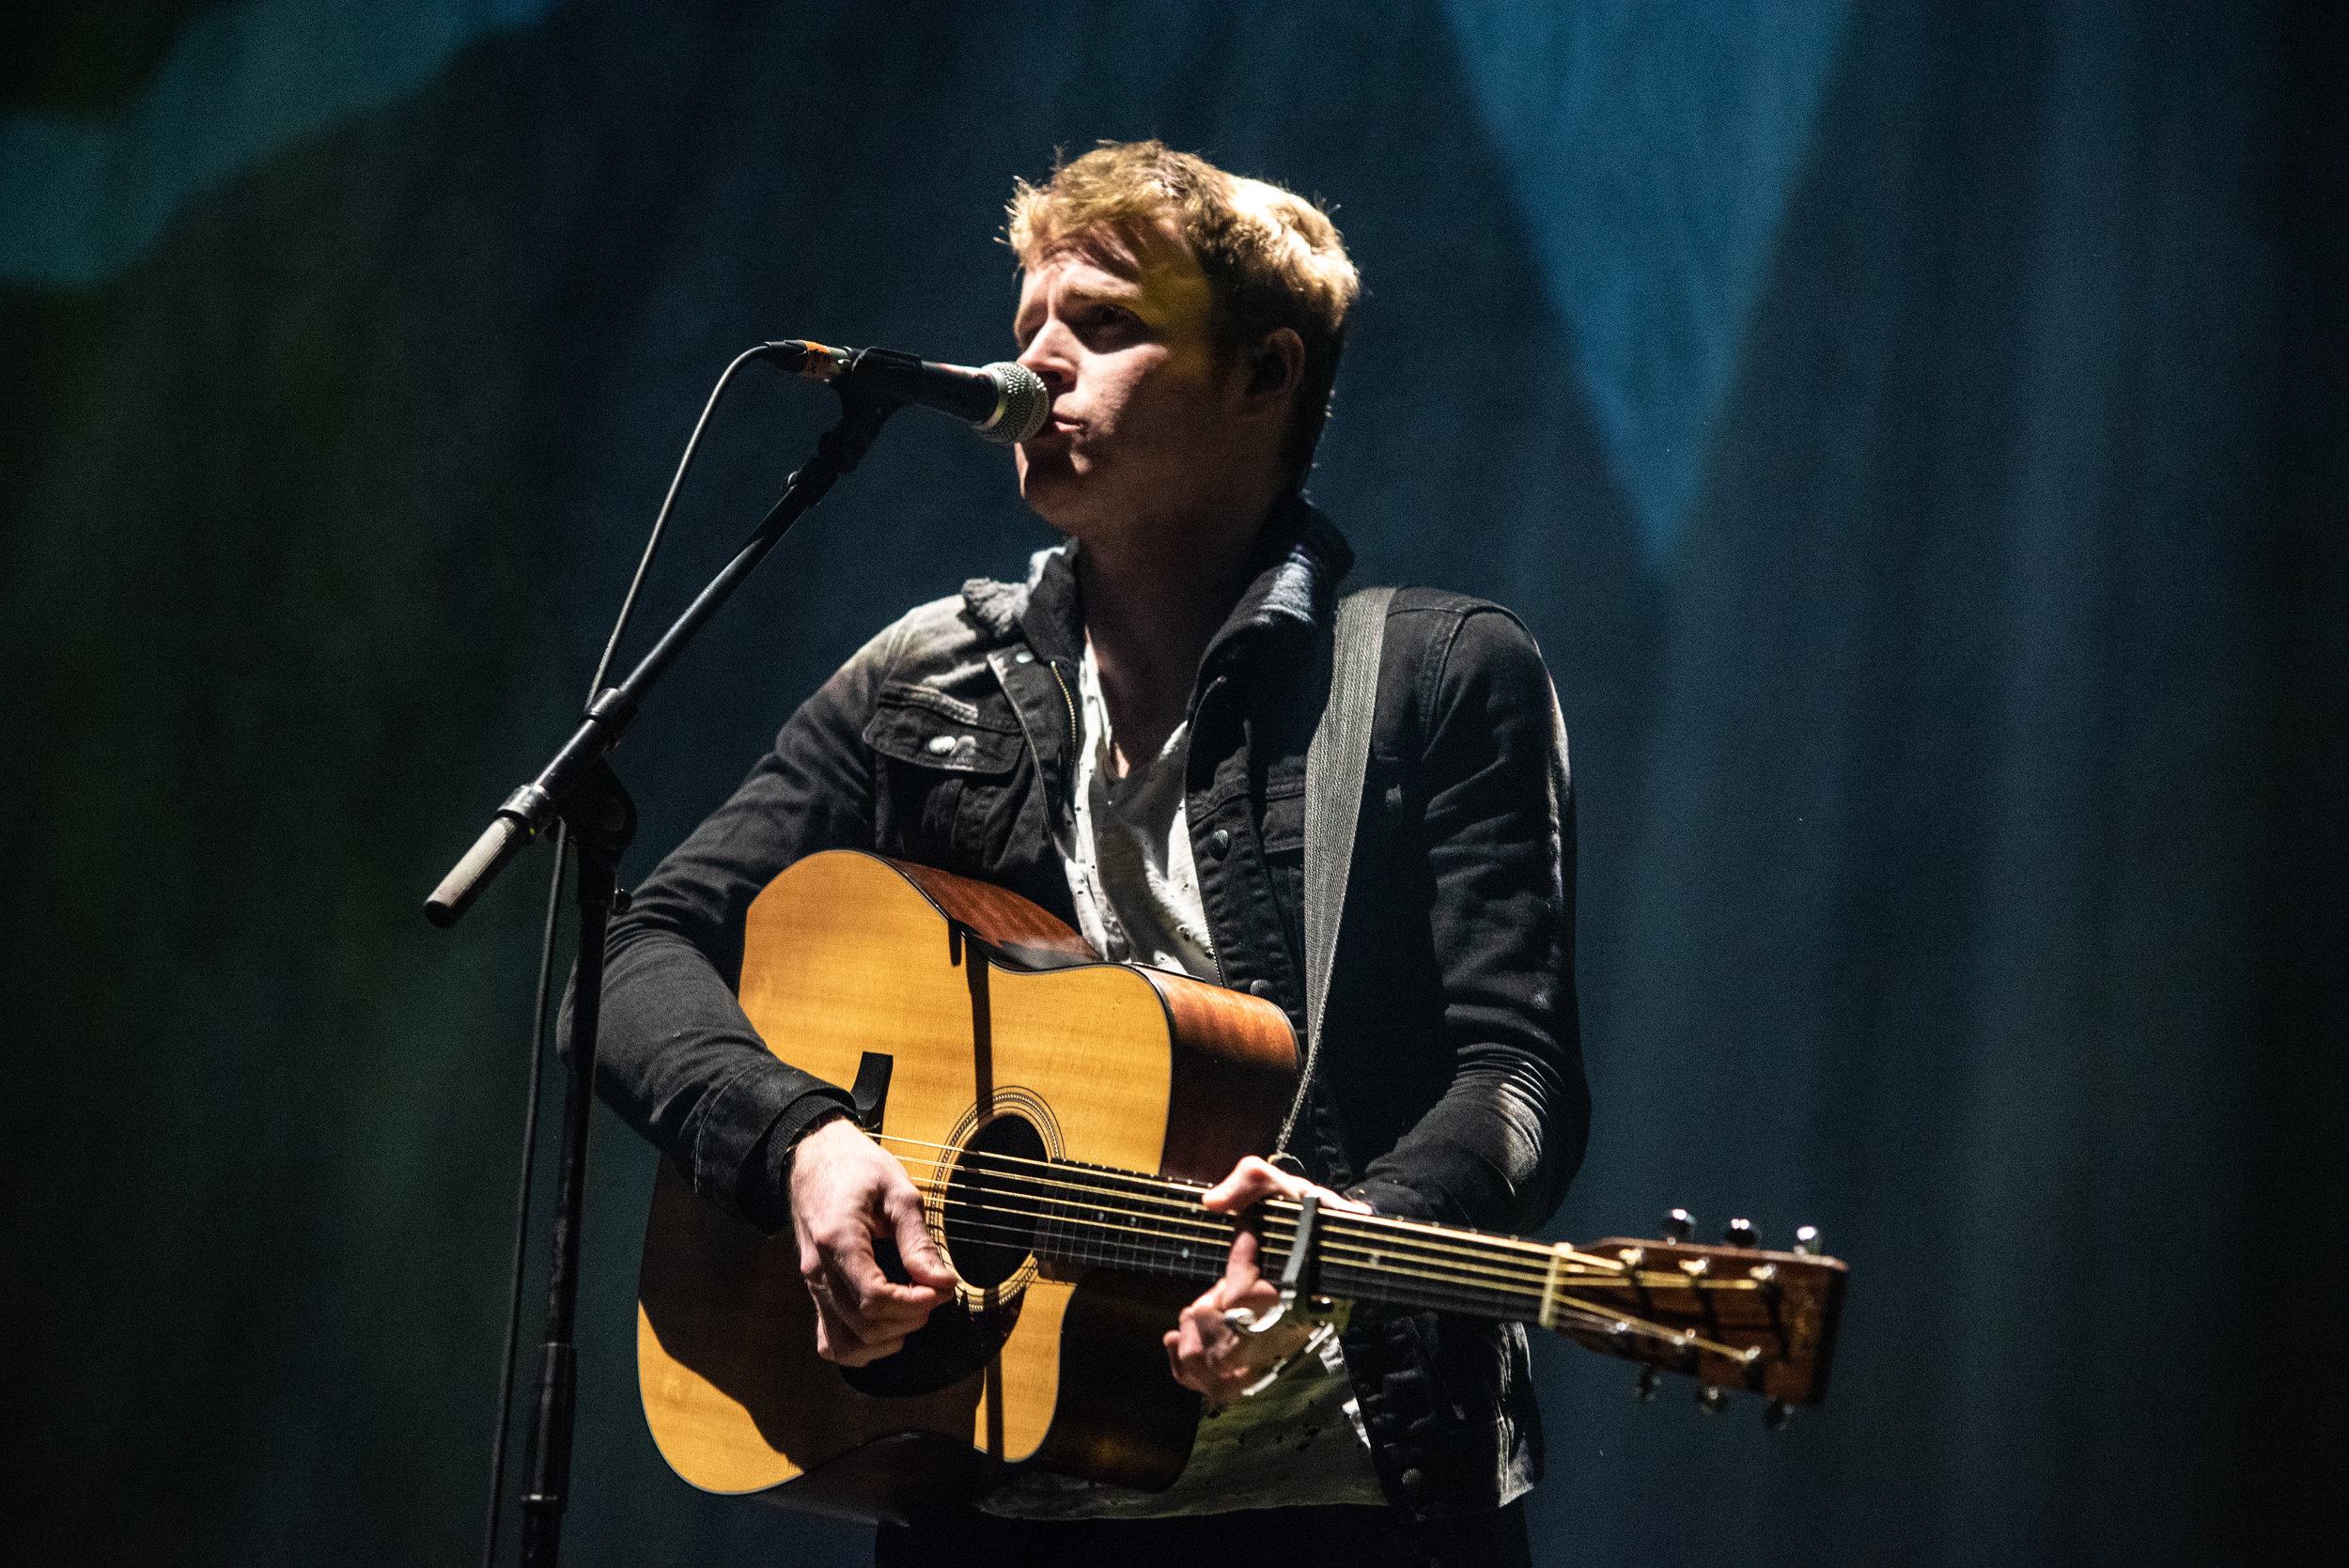 KODALINE PERFORMING AT GLASGOW'S SSE HYDRO - 31.01.2019  PICTURE BY: CALUM BUCHAN PHOTOGRAPHY